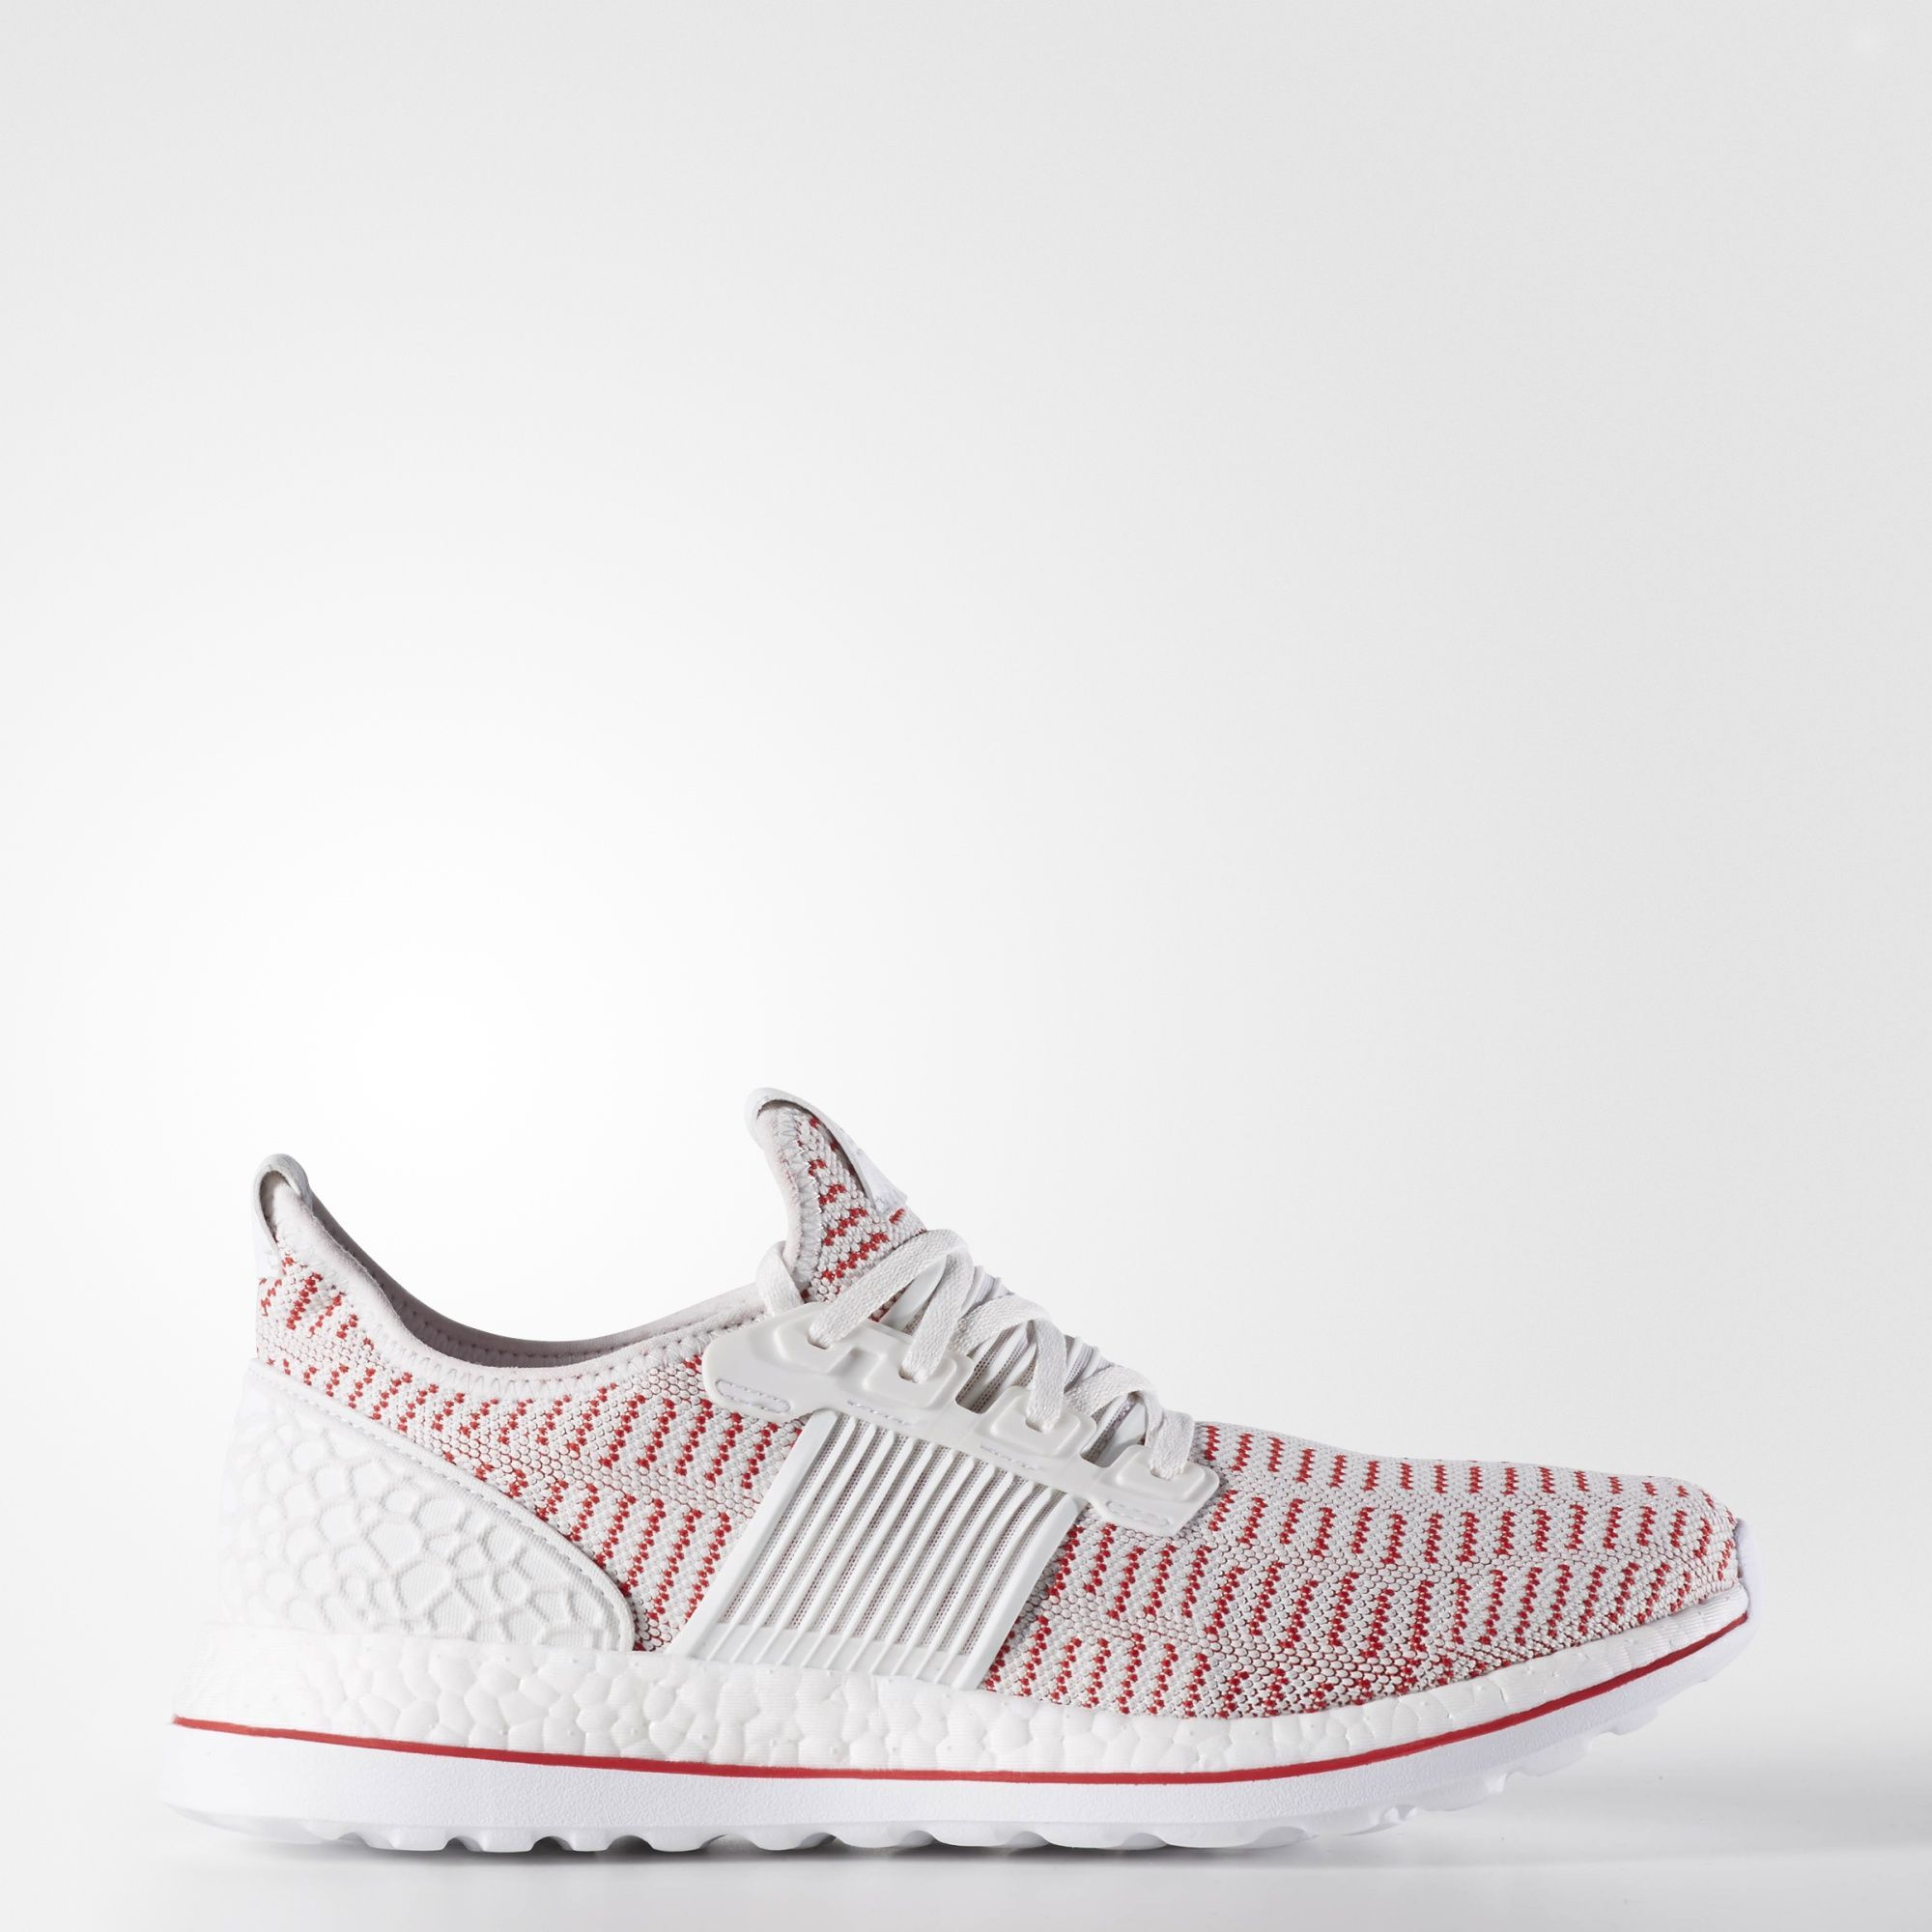 adidas Pure Boost ZG Limited Edition Schuh | Turnschuhe